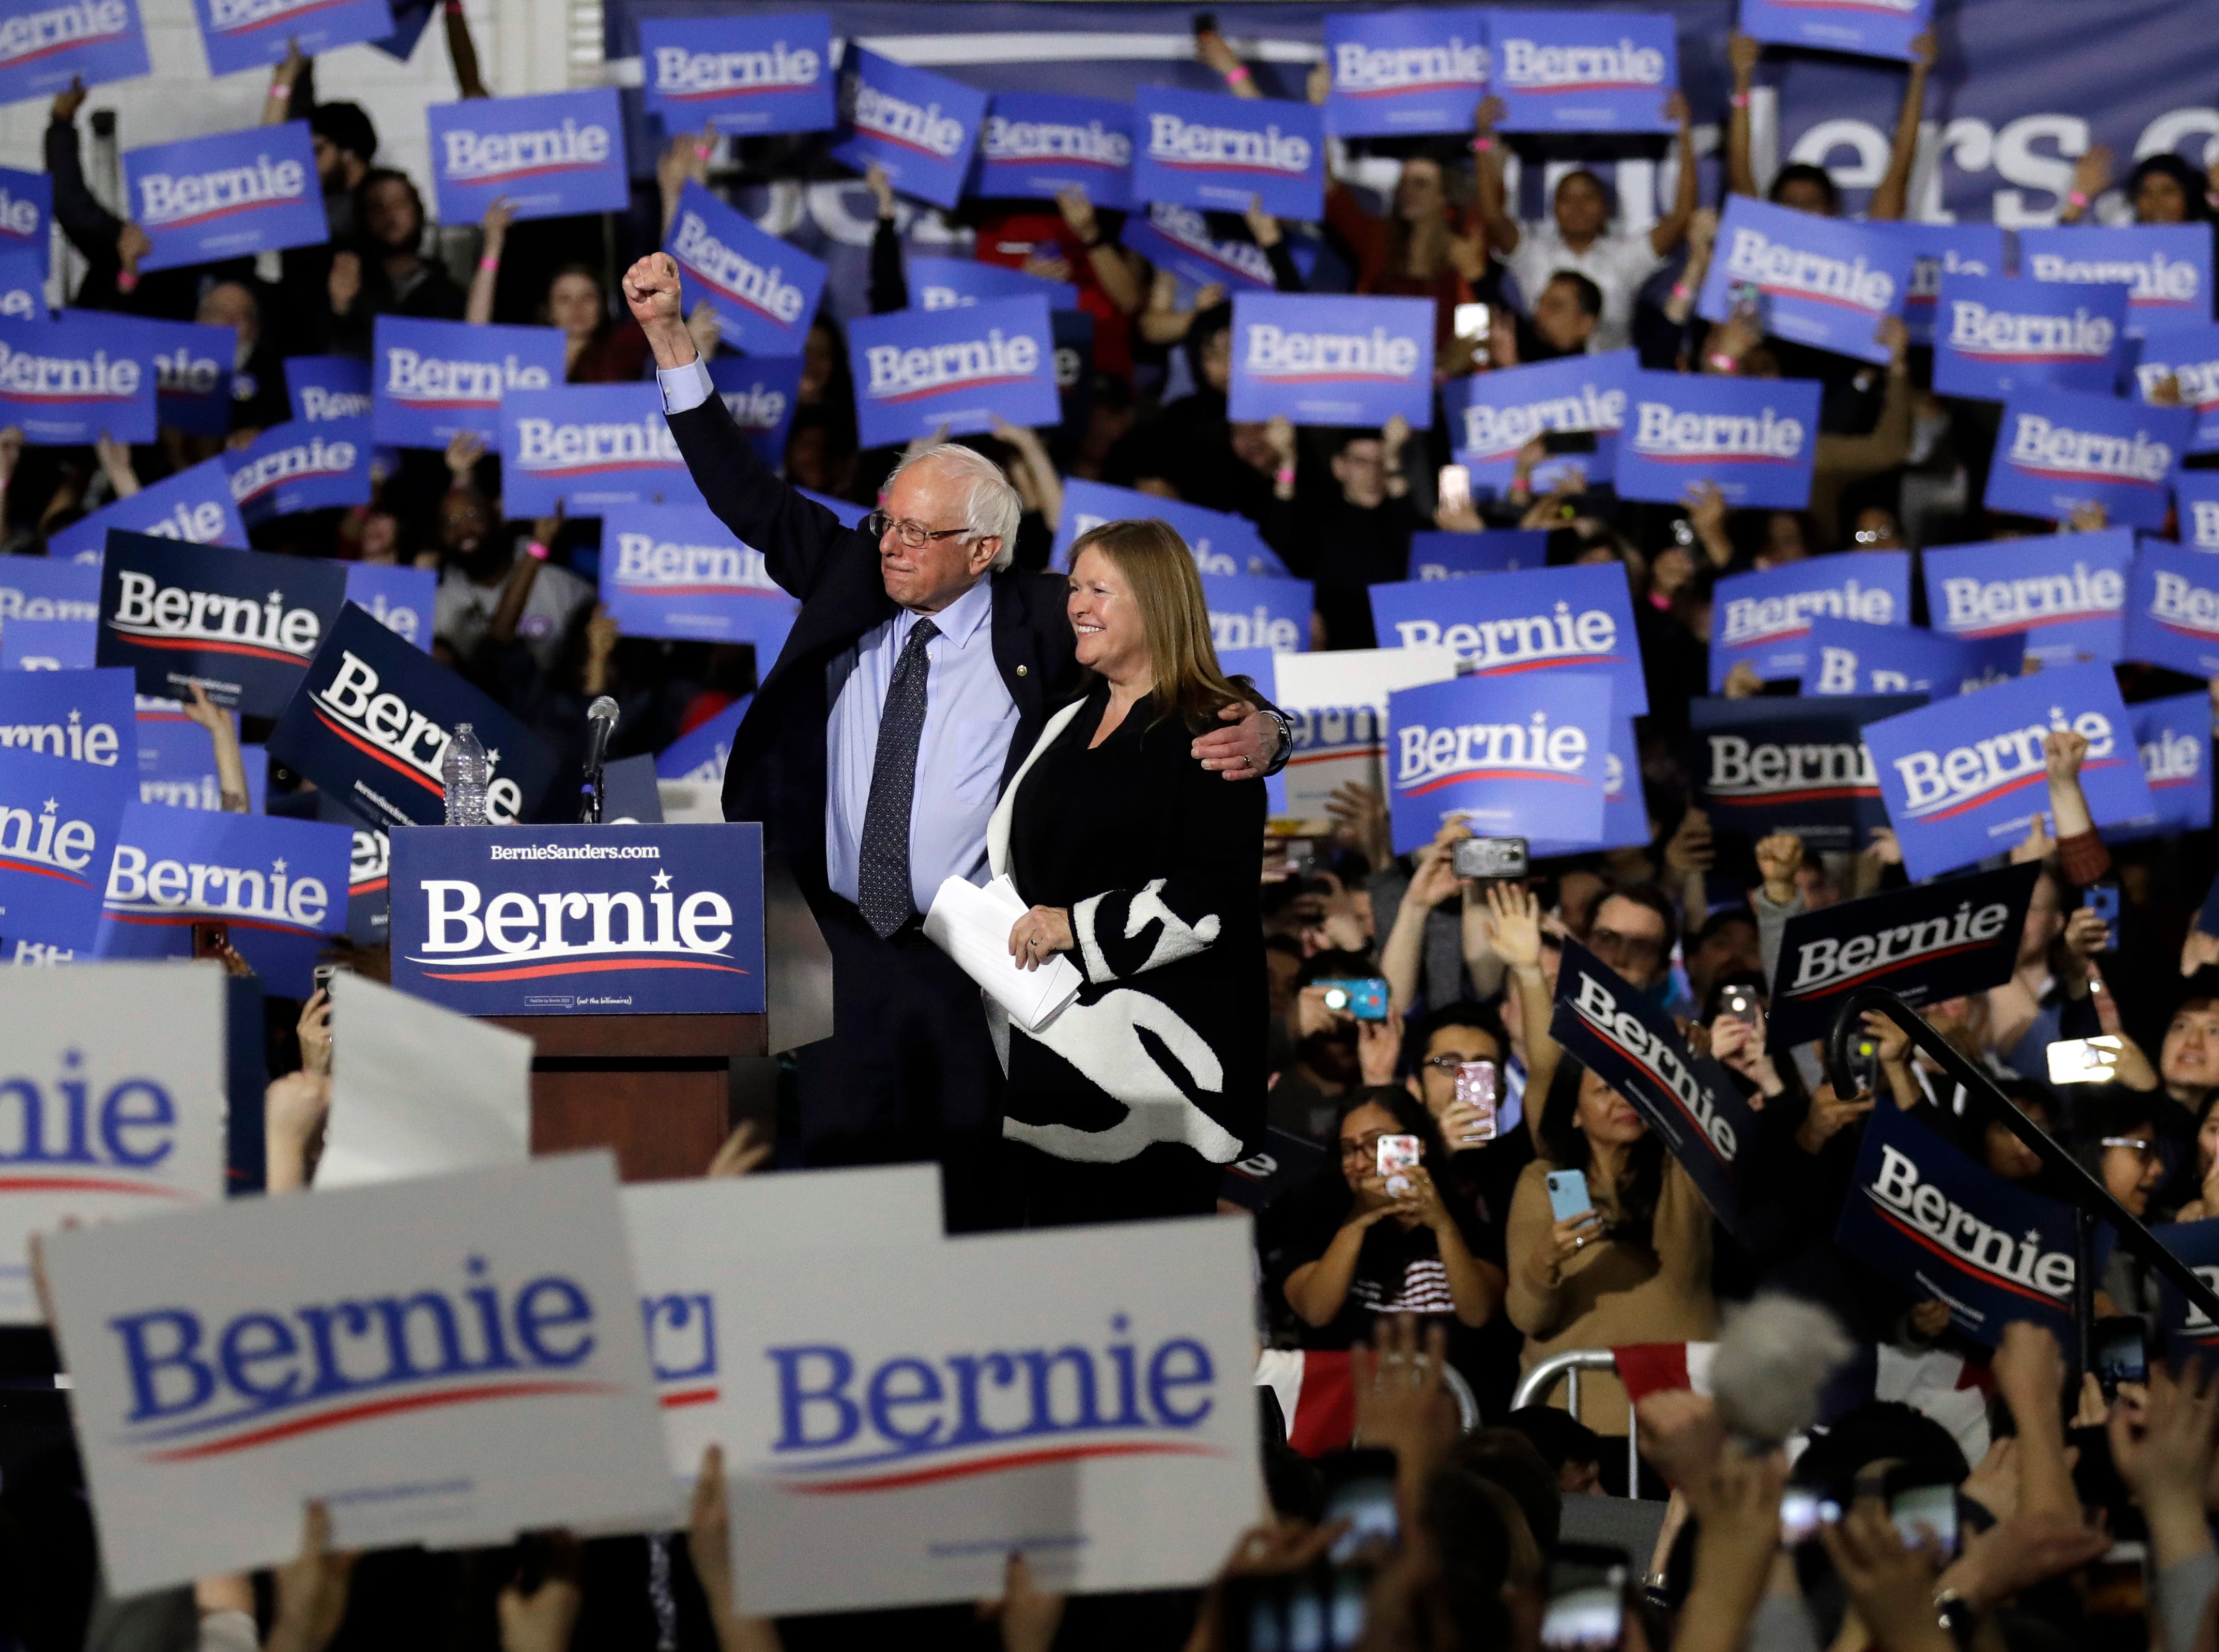 Sen. Bernie Sanders, I-Vt., left, and his wife, Jane O'Meara Sanders, acknowledge supporters before leaving his 2020 presidential campaign stop at Navy Pier in Chicago, Sunday, March 3, 2019. Over the next several weeks, Sanders will travel to Iowa, New Hampshire, South Carolina, Nevada, and California. He will then return to Burlington, Vt., for the official launch of his campaign.